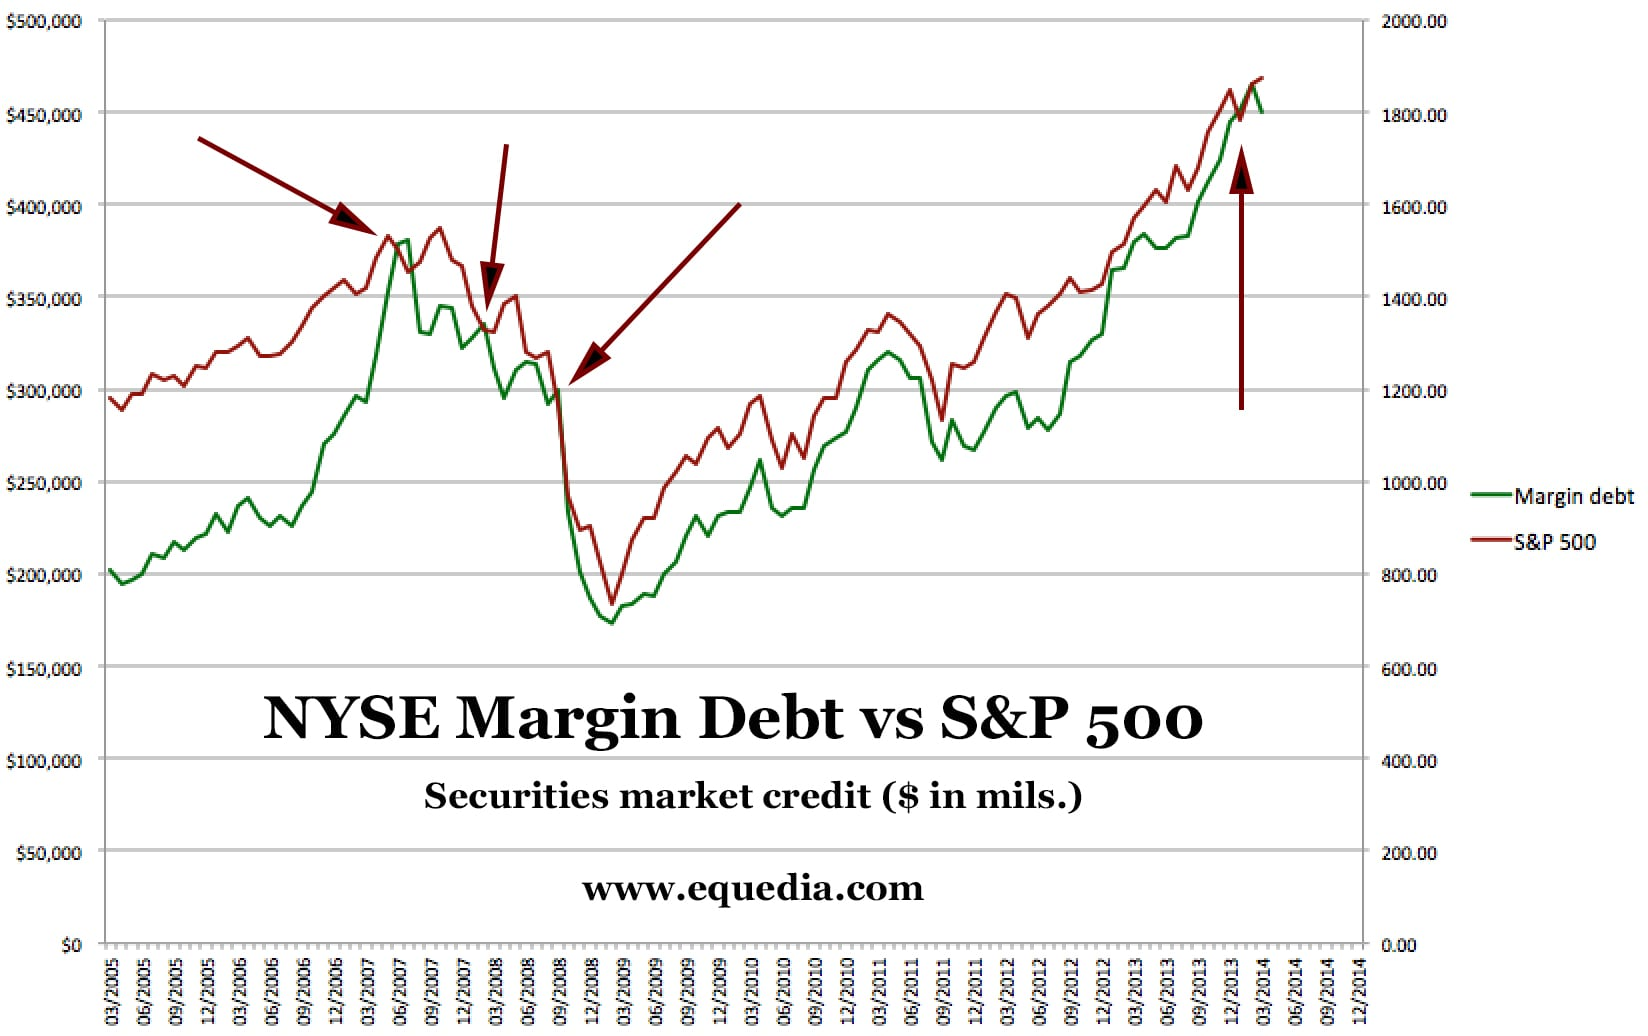 nyse-margin-debt-and-s-and-p